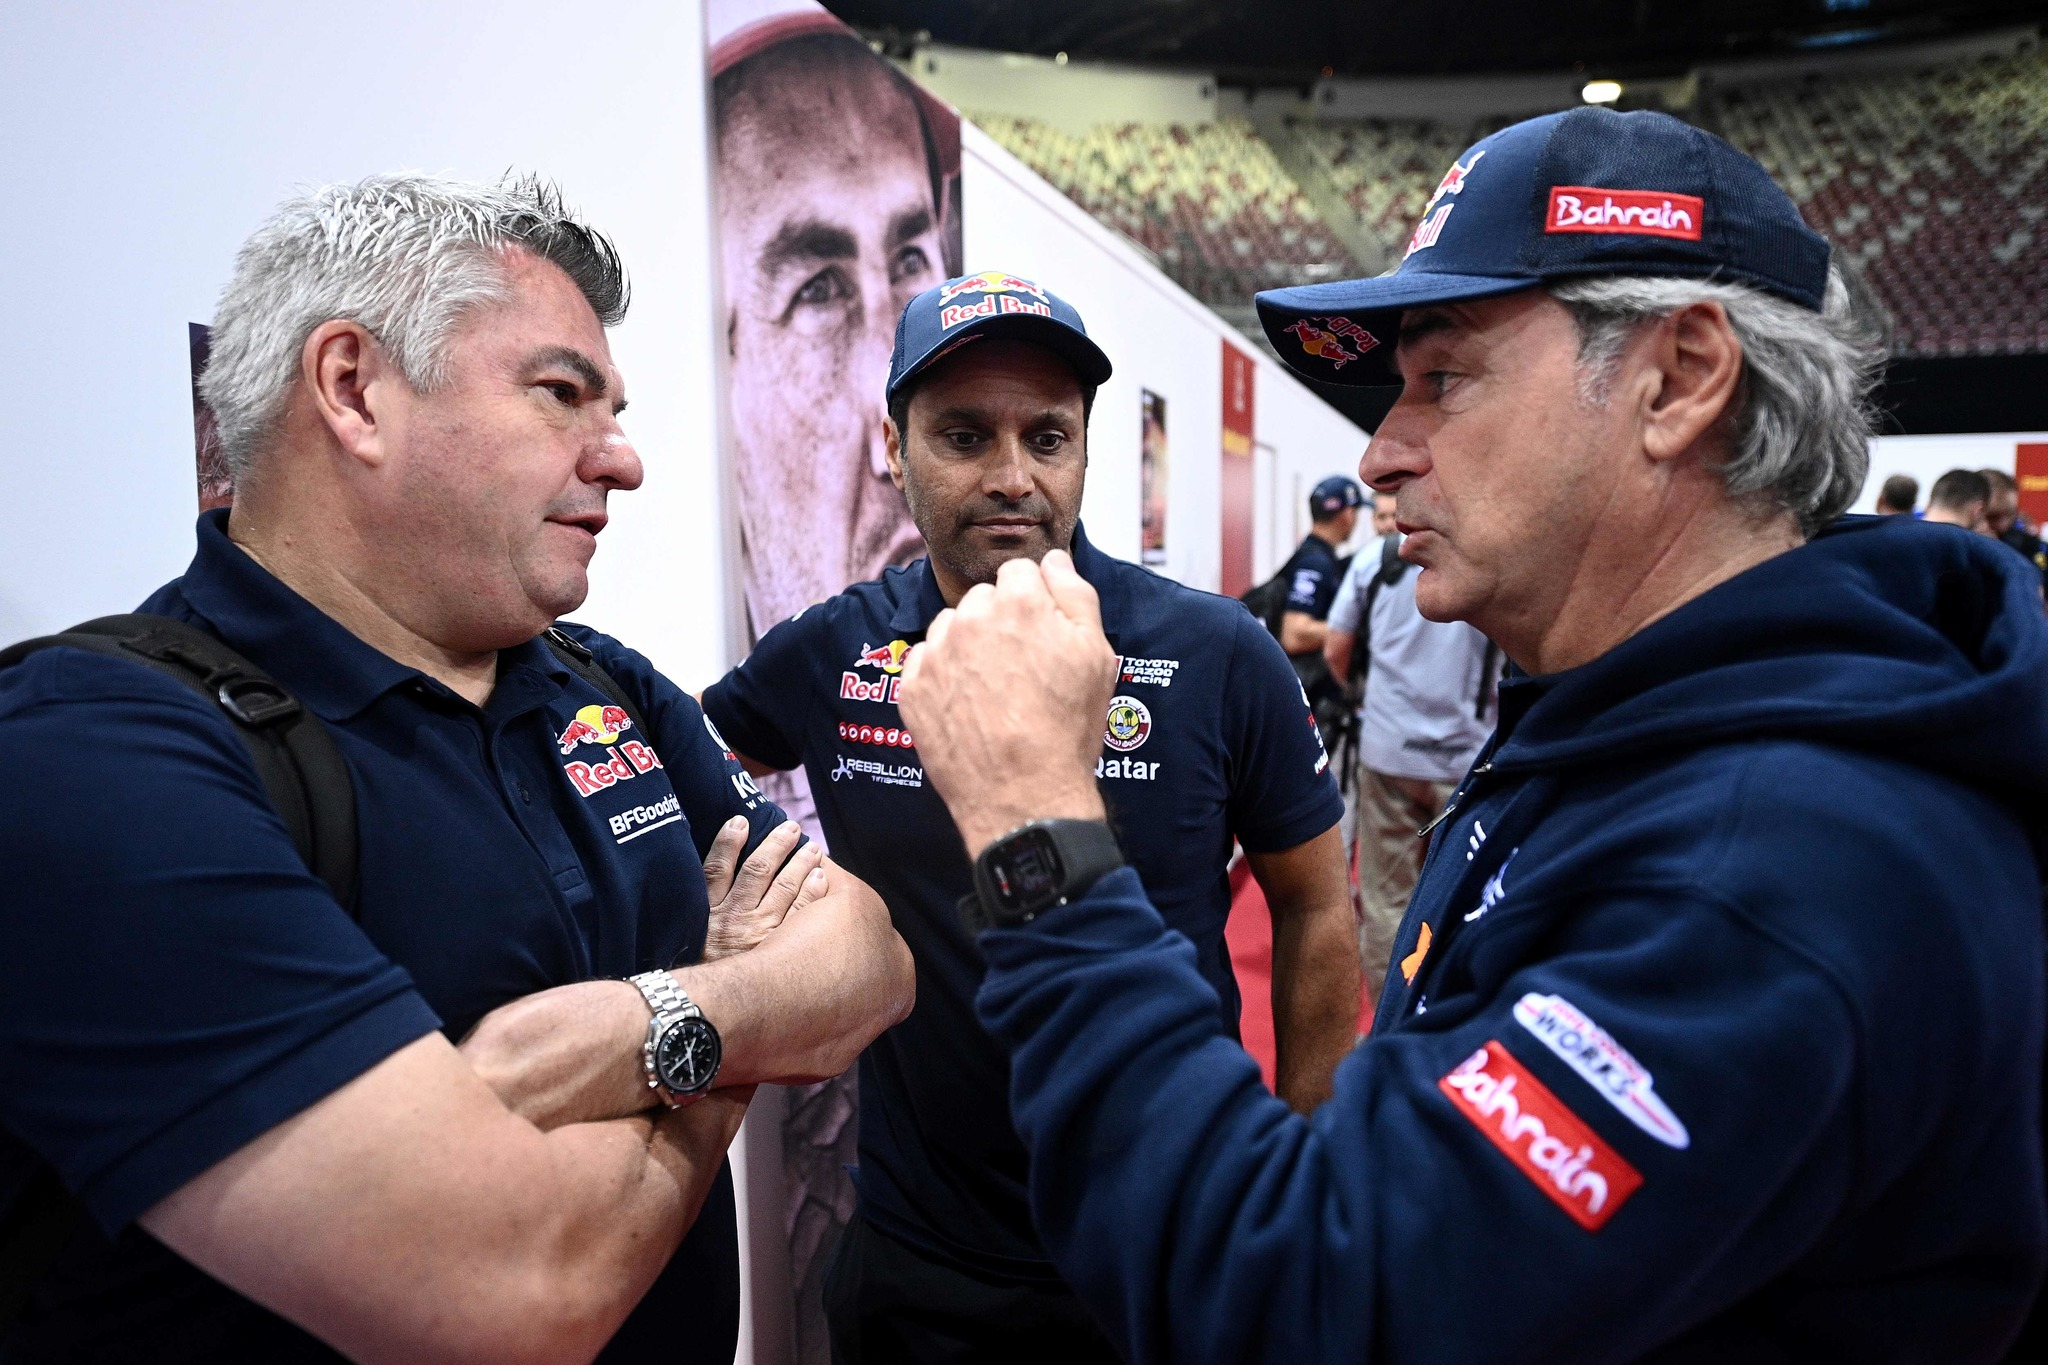 (from L) <HIT>Toyota</HIT>s team manager Jean Marc Fortin speaks with <HIT>Toyota</HIT>s driver Nasser Al-Attiyah of Qatar and <HIT>Mini</HIT>s drivers Carlos Sainz of Spain during a technical check-up in Jeddah, on January 4, 2020, ahead of the 2020 Dakar Rally, which this year will take place in Saudi Arabia from January 5 to 17, 2020. (Photo by FRANCK FIFE / AFP)